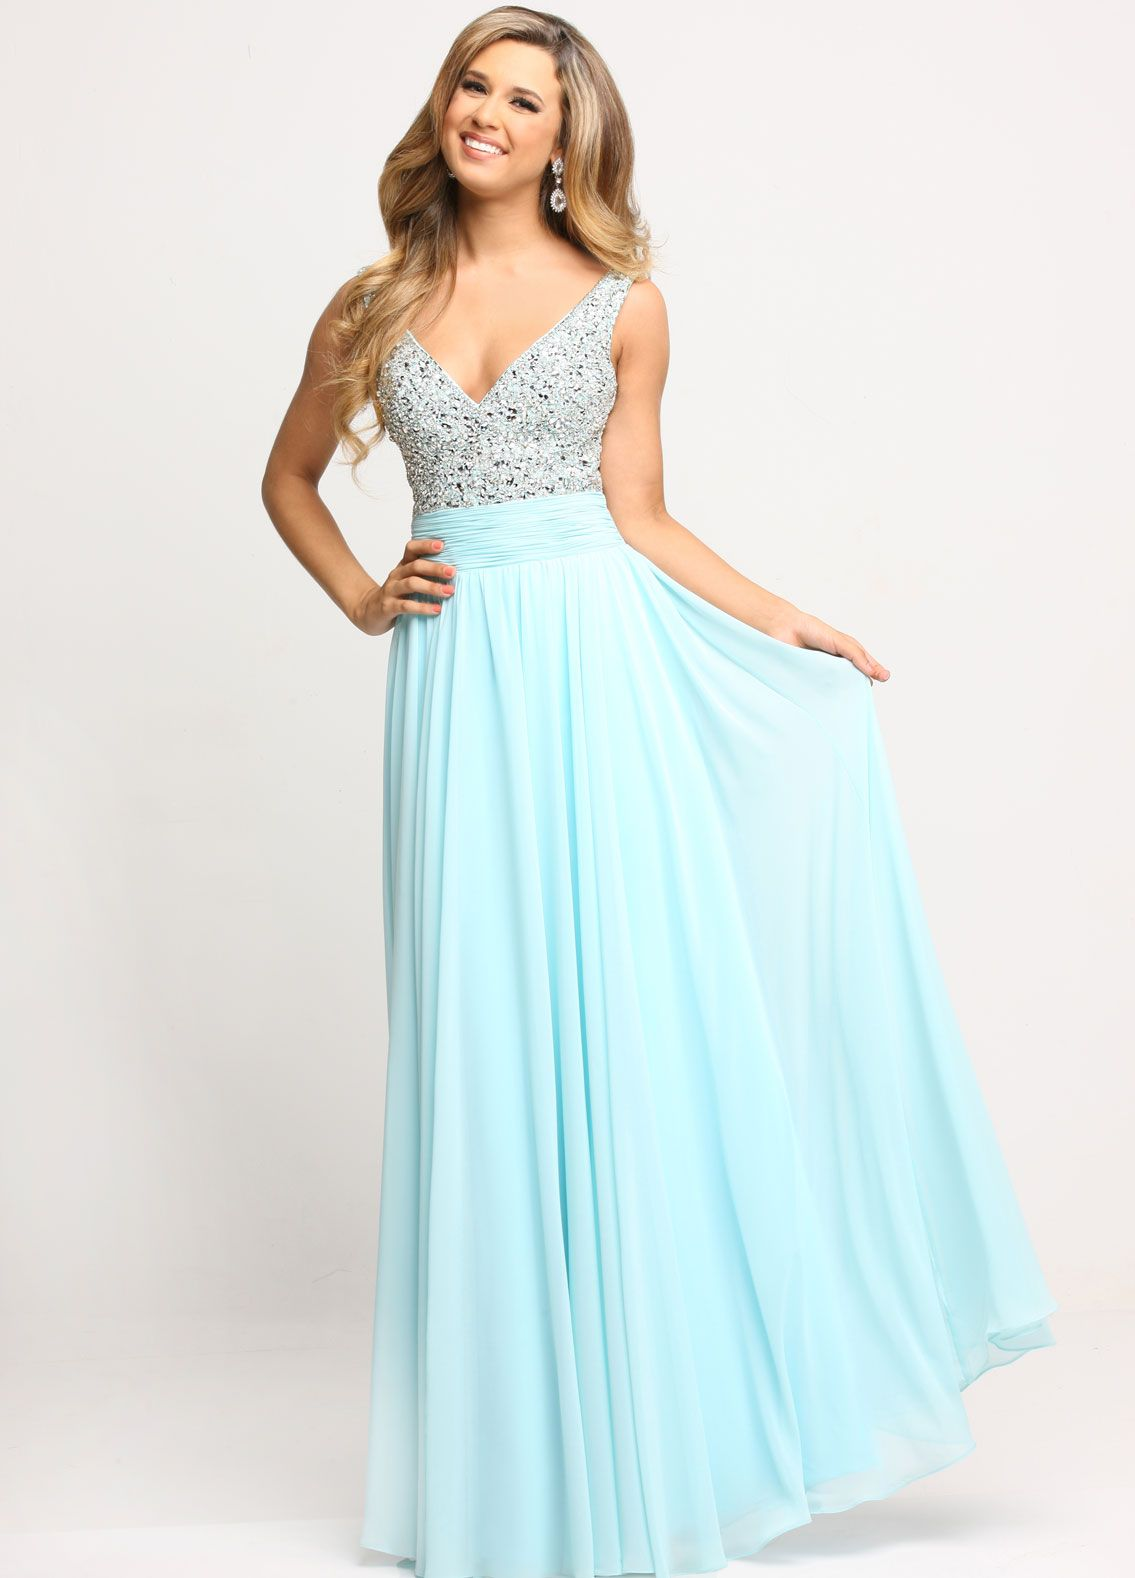 Pin by Wendy\'s Bridal Fort Wayne, IN on Sparkle Prom | Pinterest | Prom